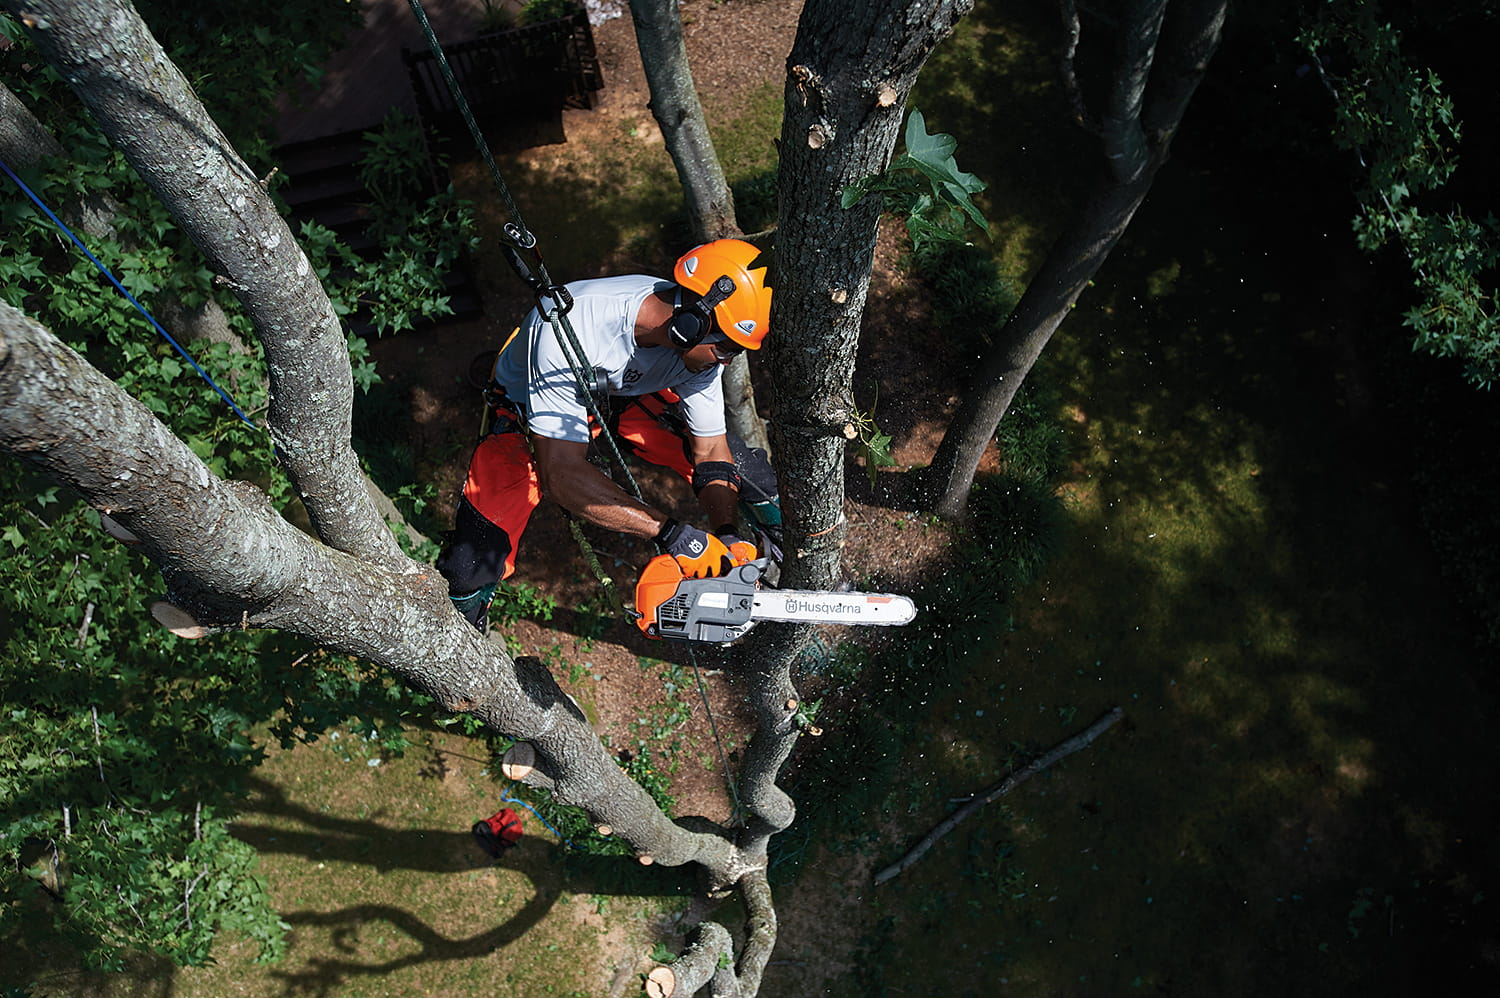 Husqvarna professional commercial chainsaws for arborists and tree care workers